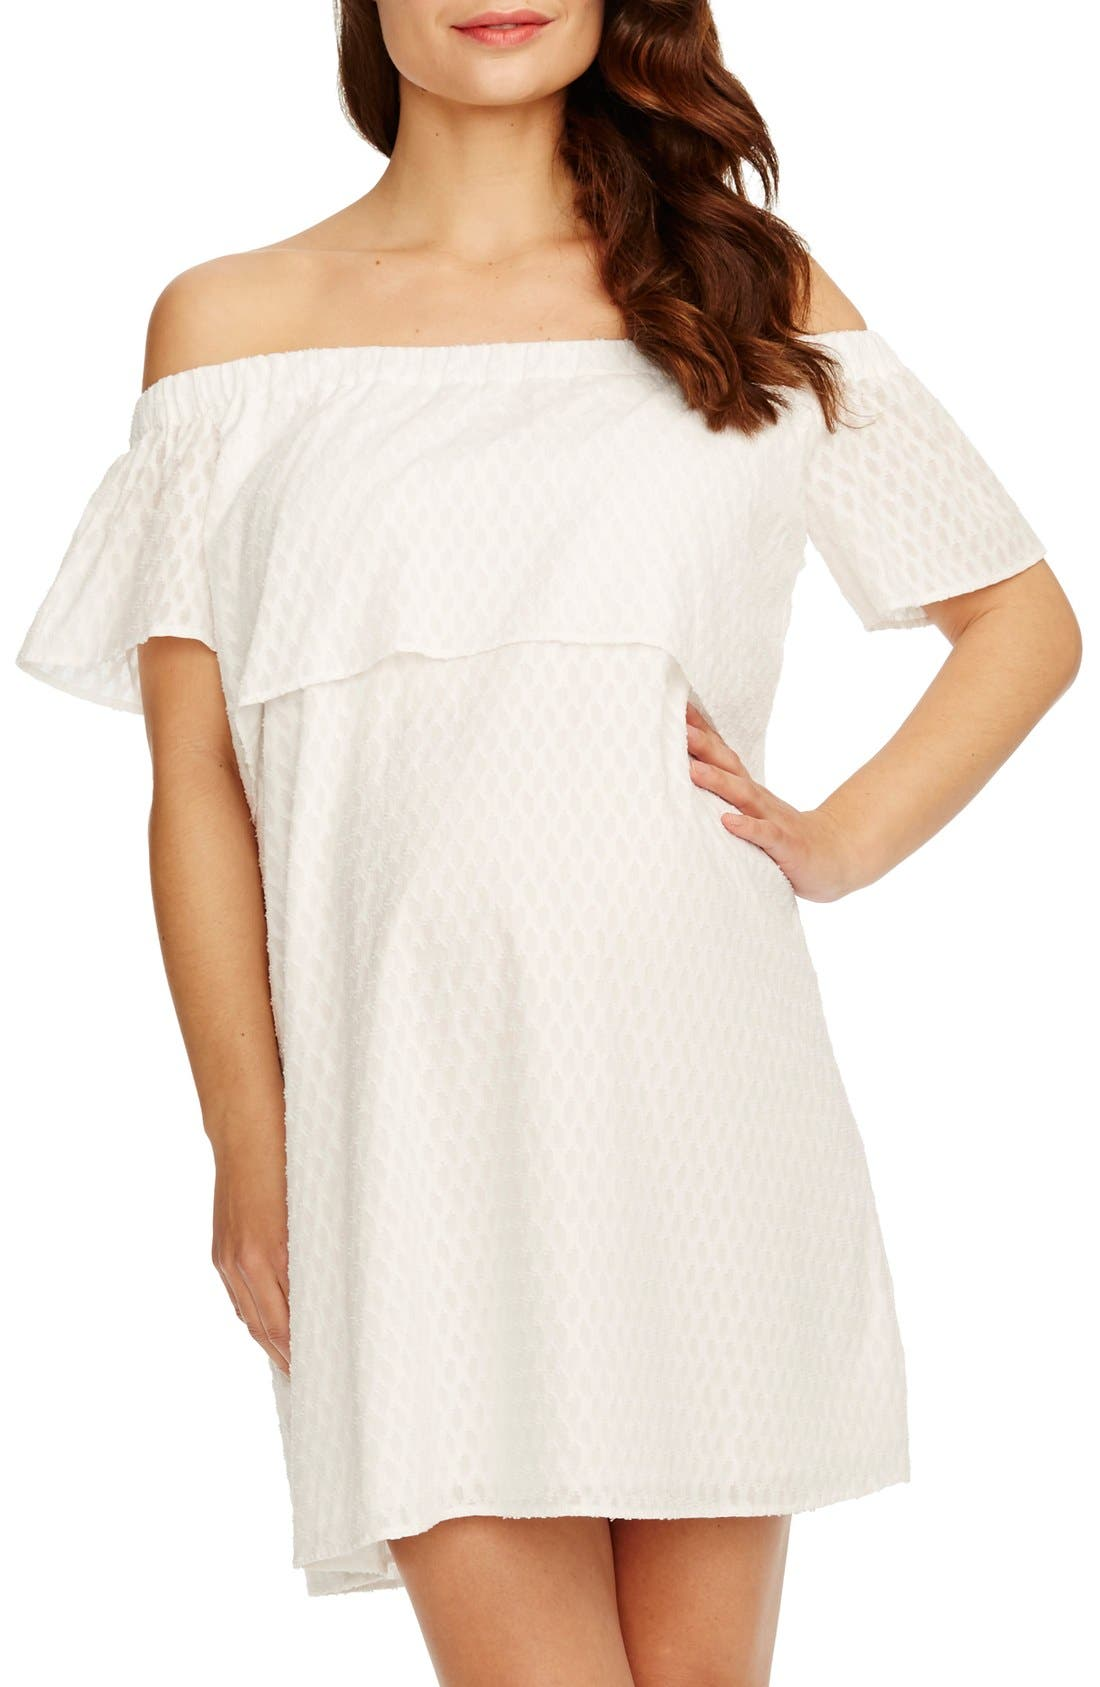 'Camille' Off the Shoulder Maternity Dress,                         Main,                         color, White